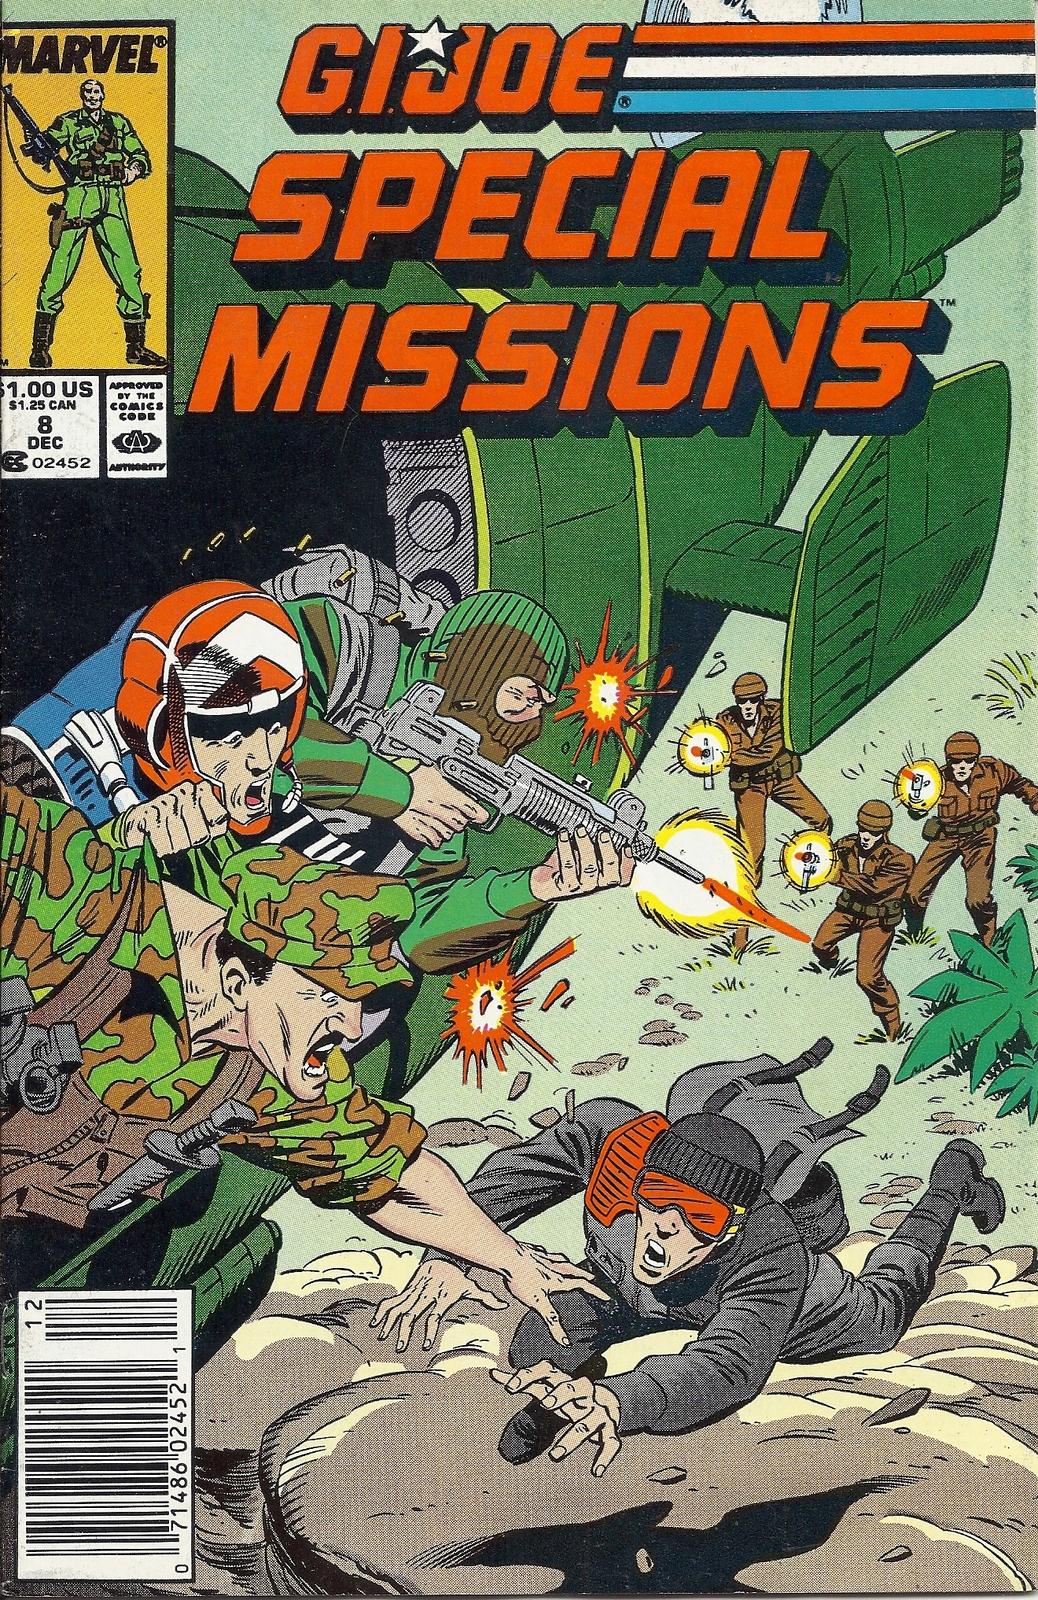 (CB-1} 1987 Marvel Comic Book: G.I. joe - Special Missions #8